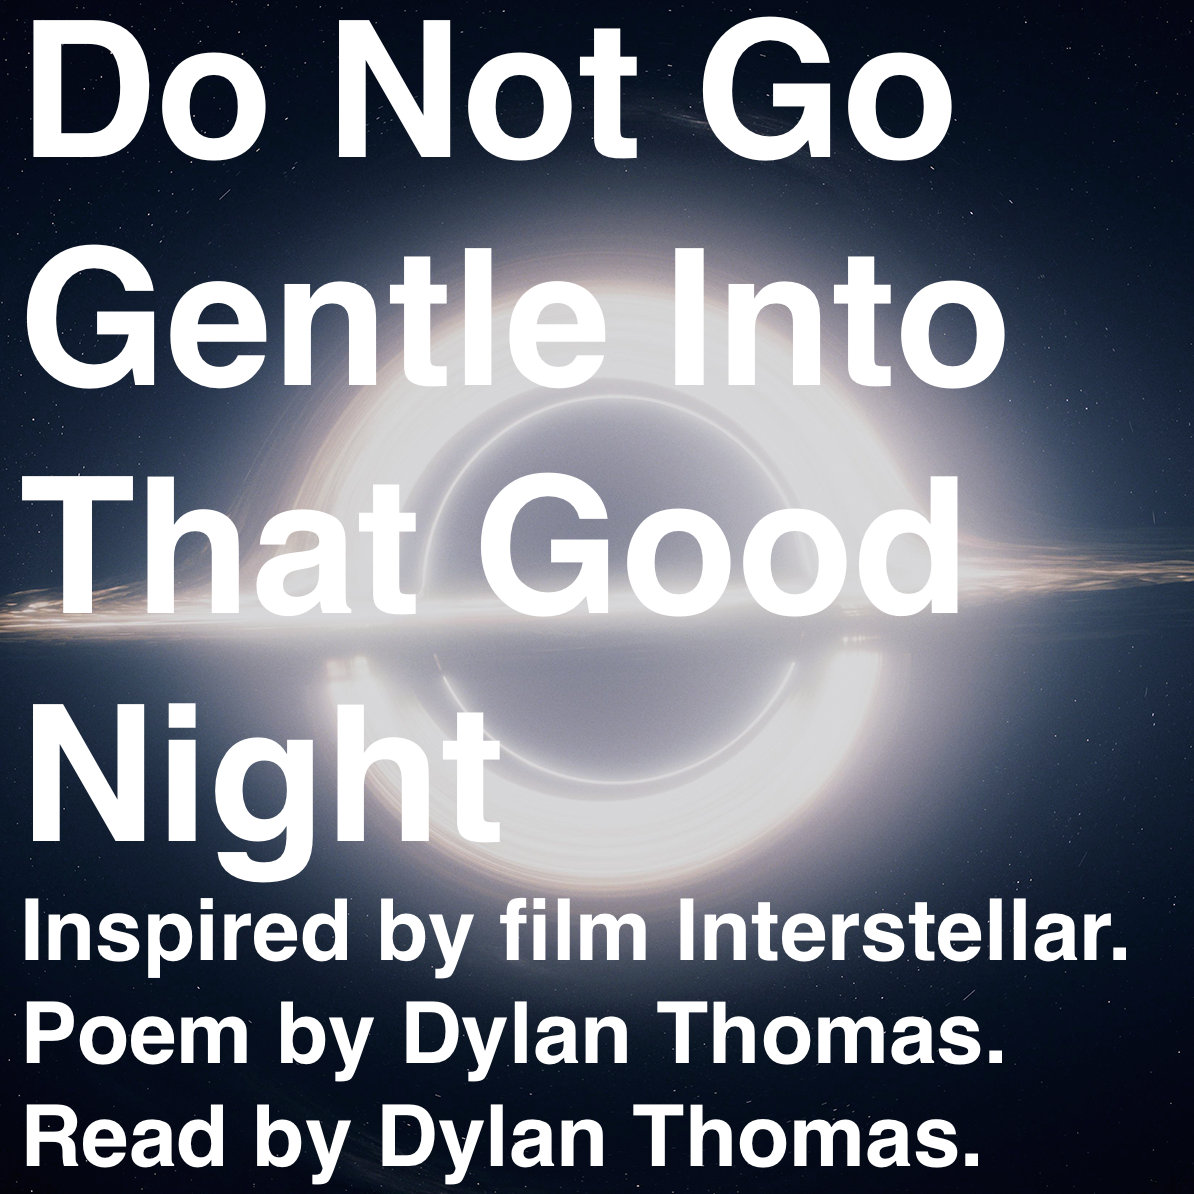 analysis of do not go gentle into that good night Do not go gentle into that good night / rage, rage against the dying of the light the two repeating refrains in this poem, naturally enough, form the primary message that informs the meaning of the work.